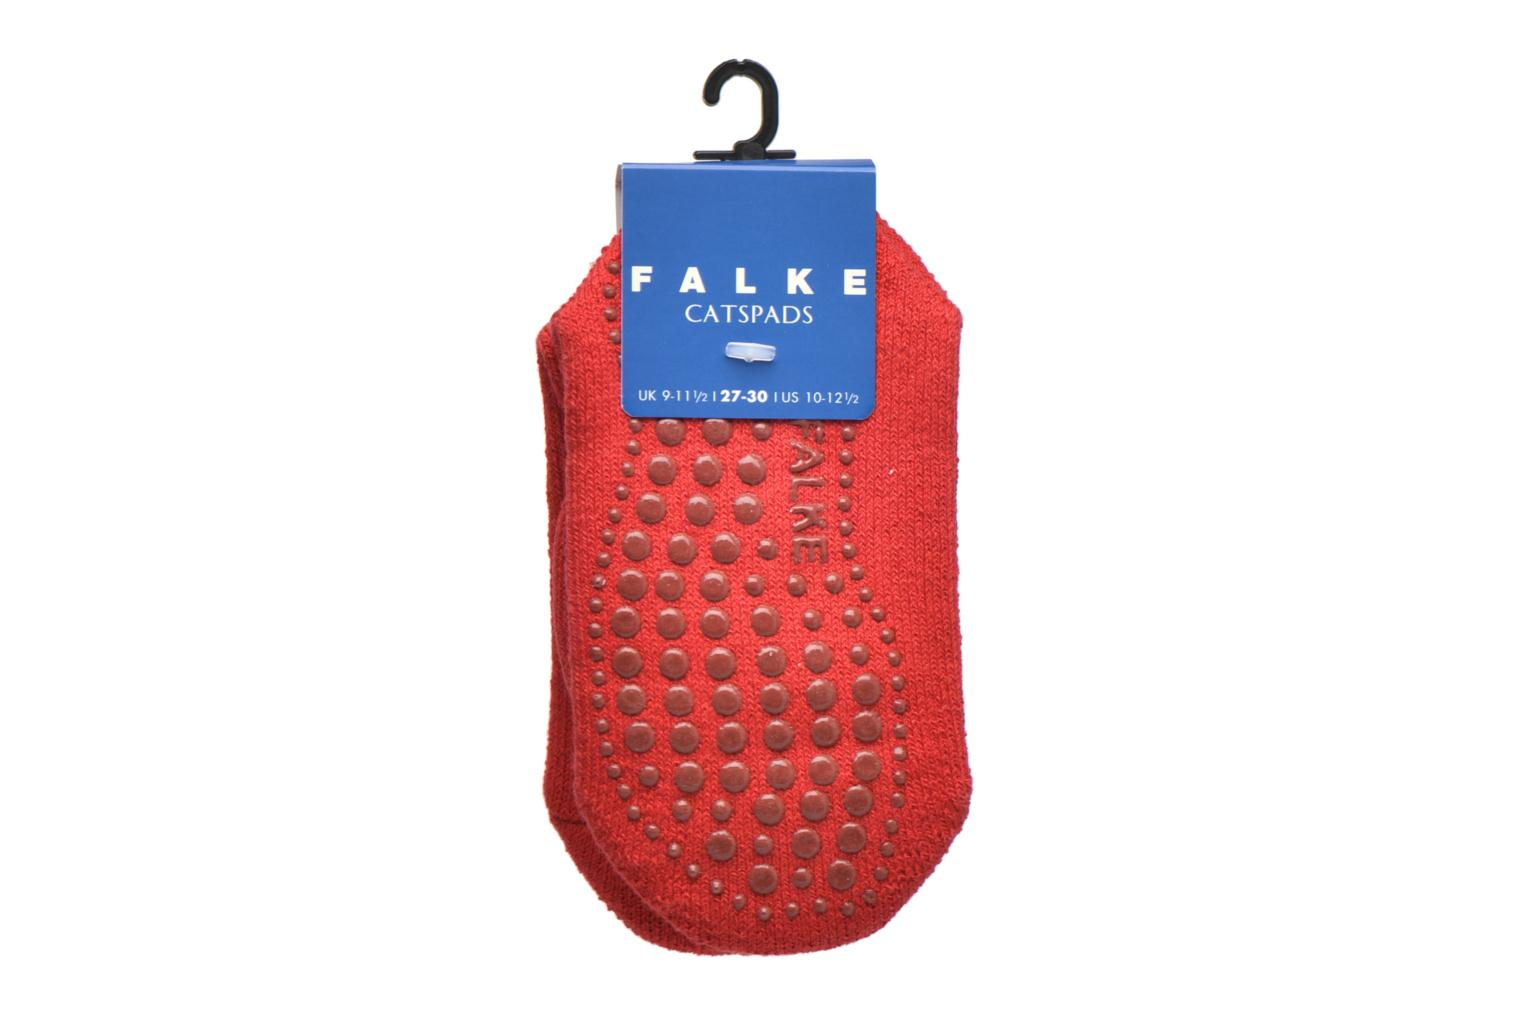 Medias y Calcetines Falke Chaussons-chaussettes Catspads Rojo vistra trasera